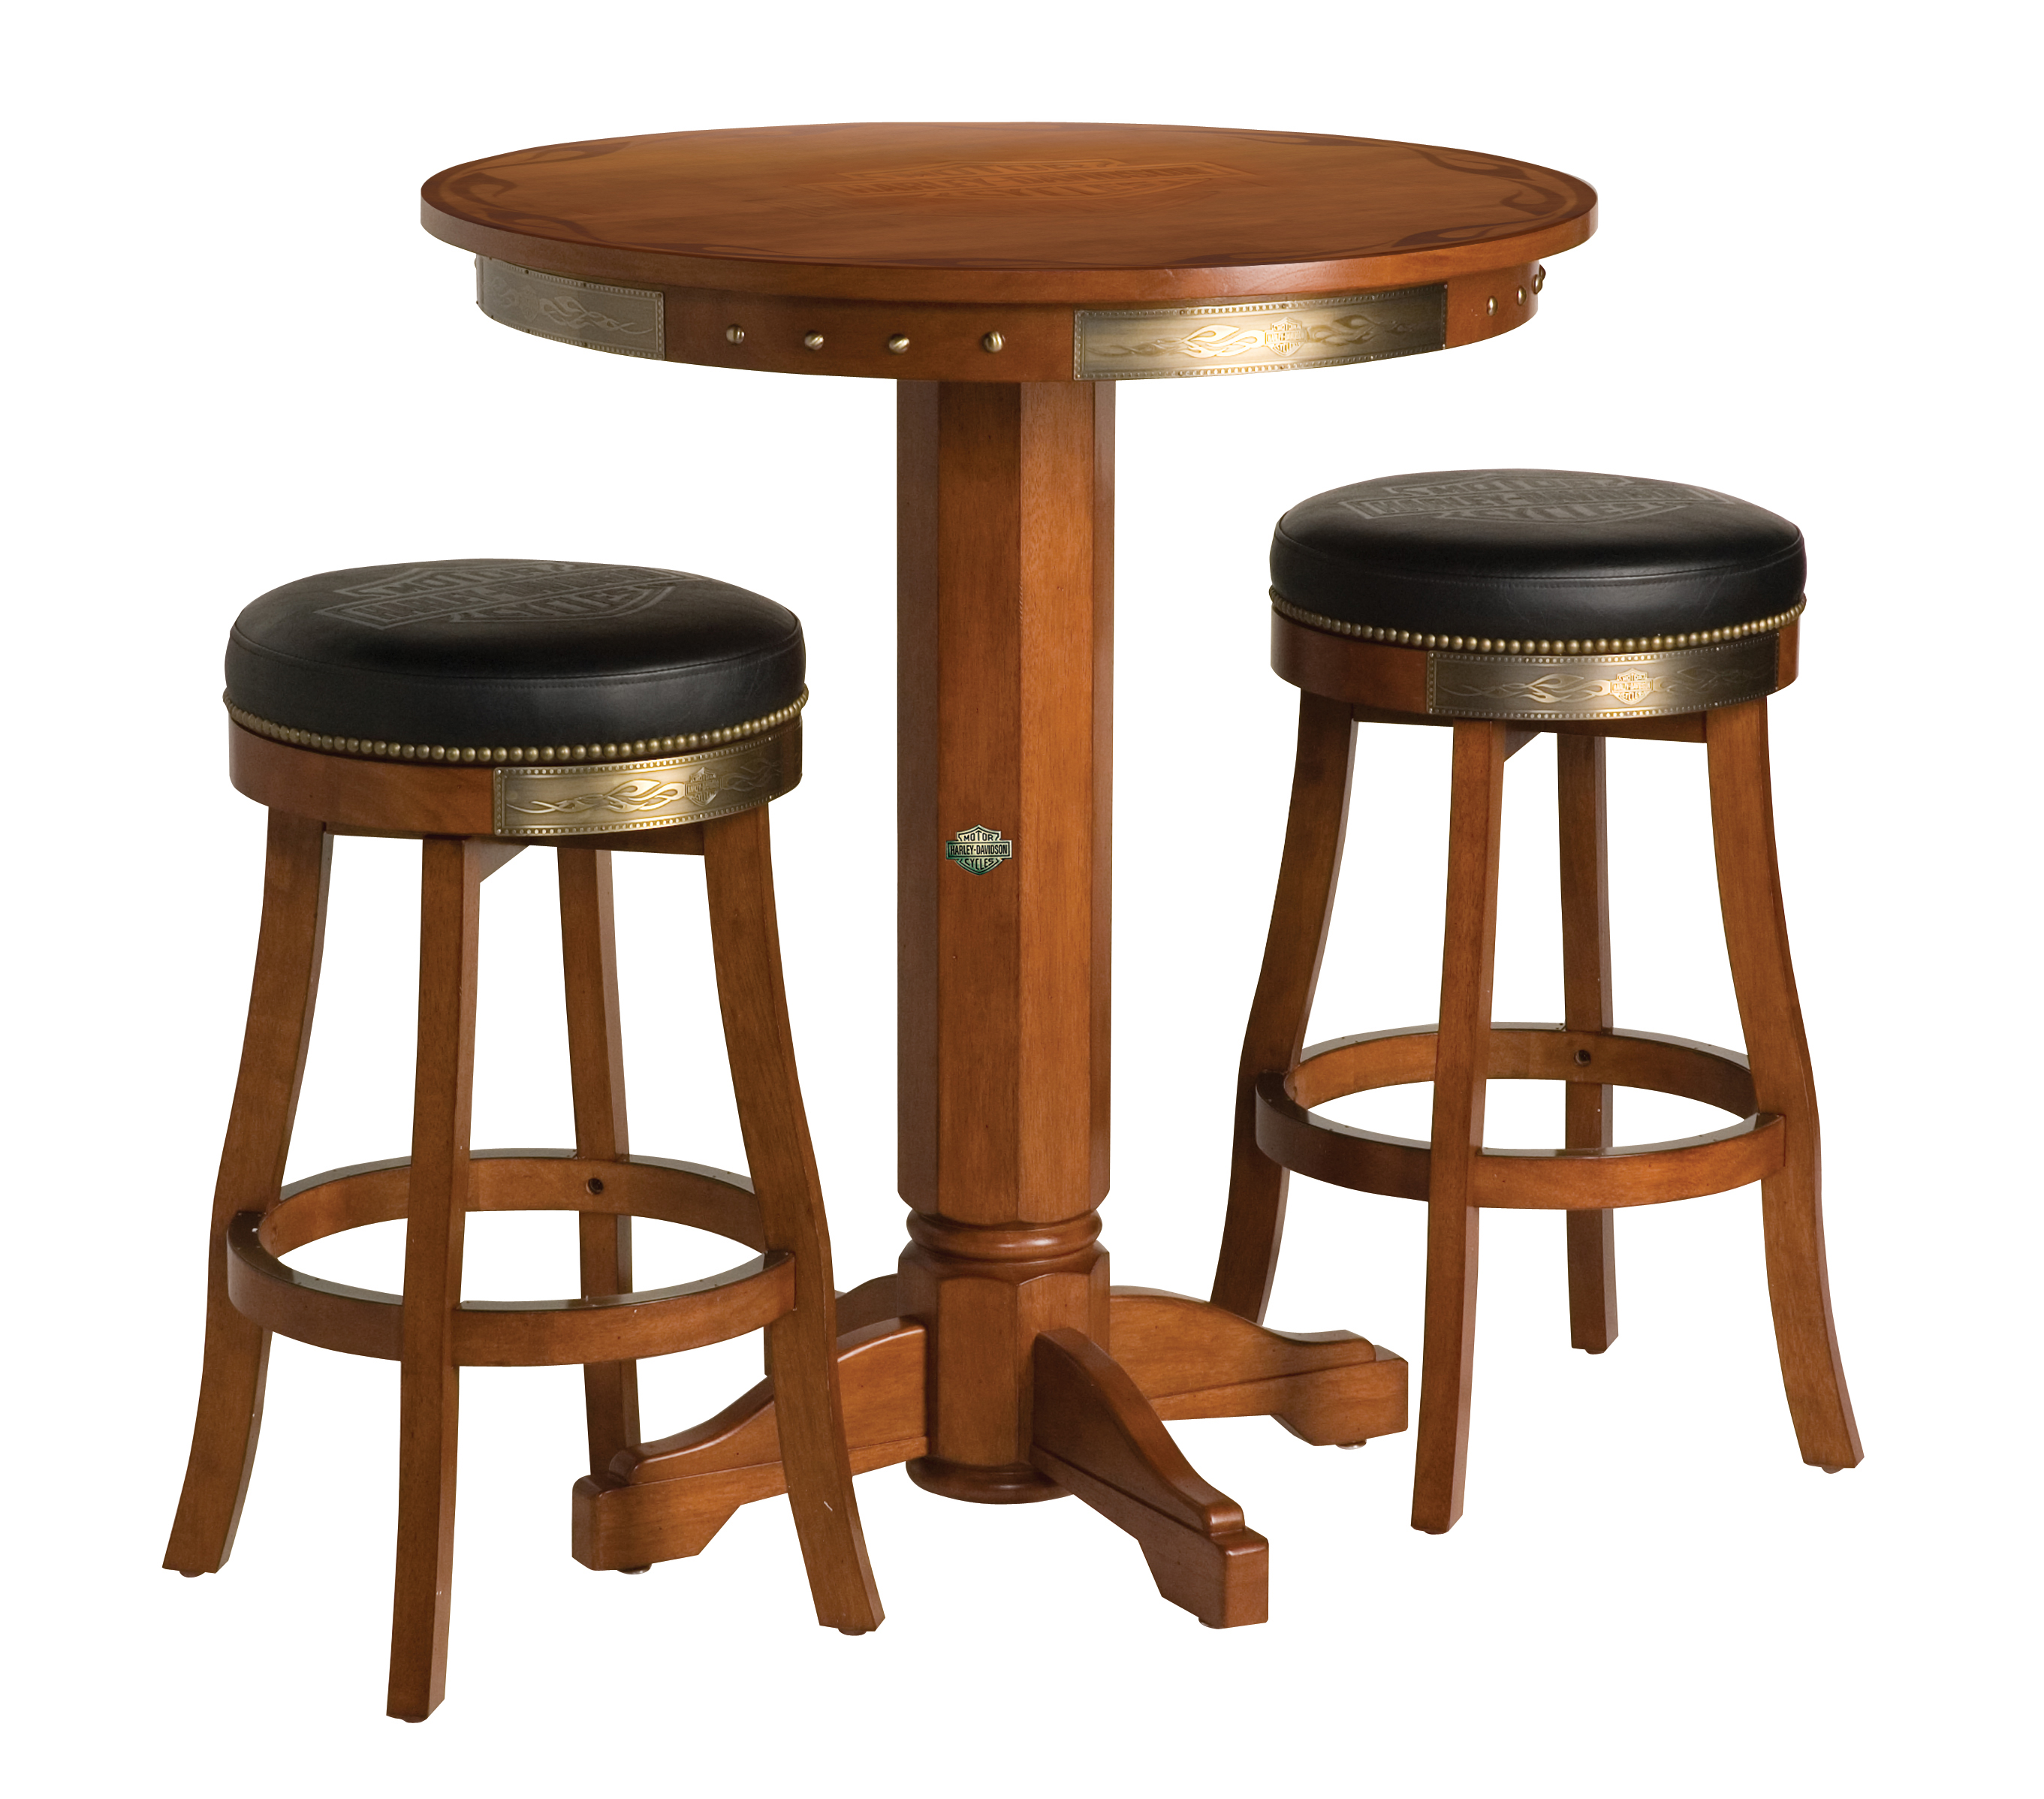 Harley-Davidson B&S Flames Pub Table & Stool Set Heritage Brown Finish HDL-13202-H